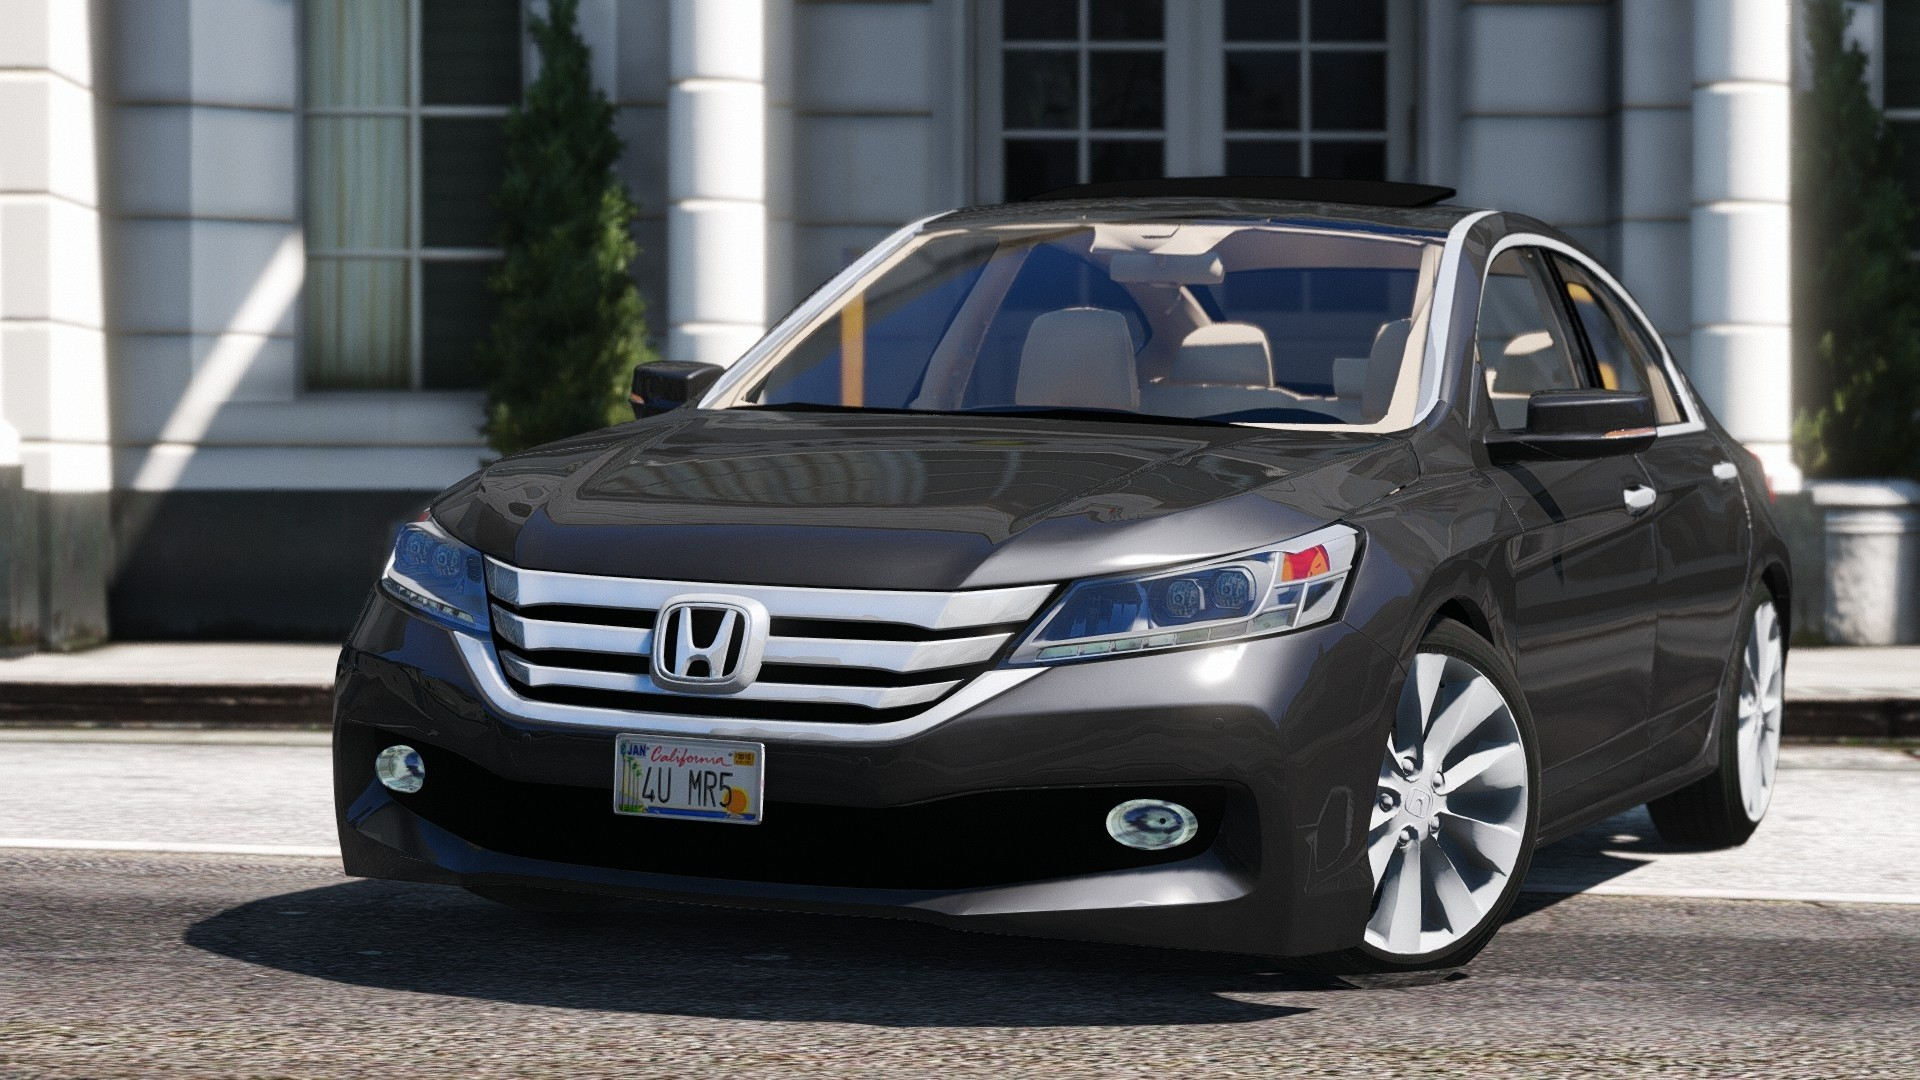 honda accord 2015 v hicules t l chargements gta 5. Black Bedroom Furniture Sets. Home Design Ideas